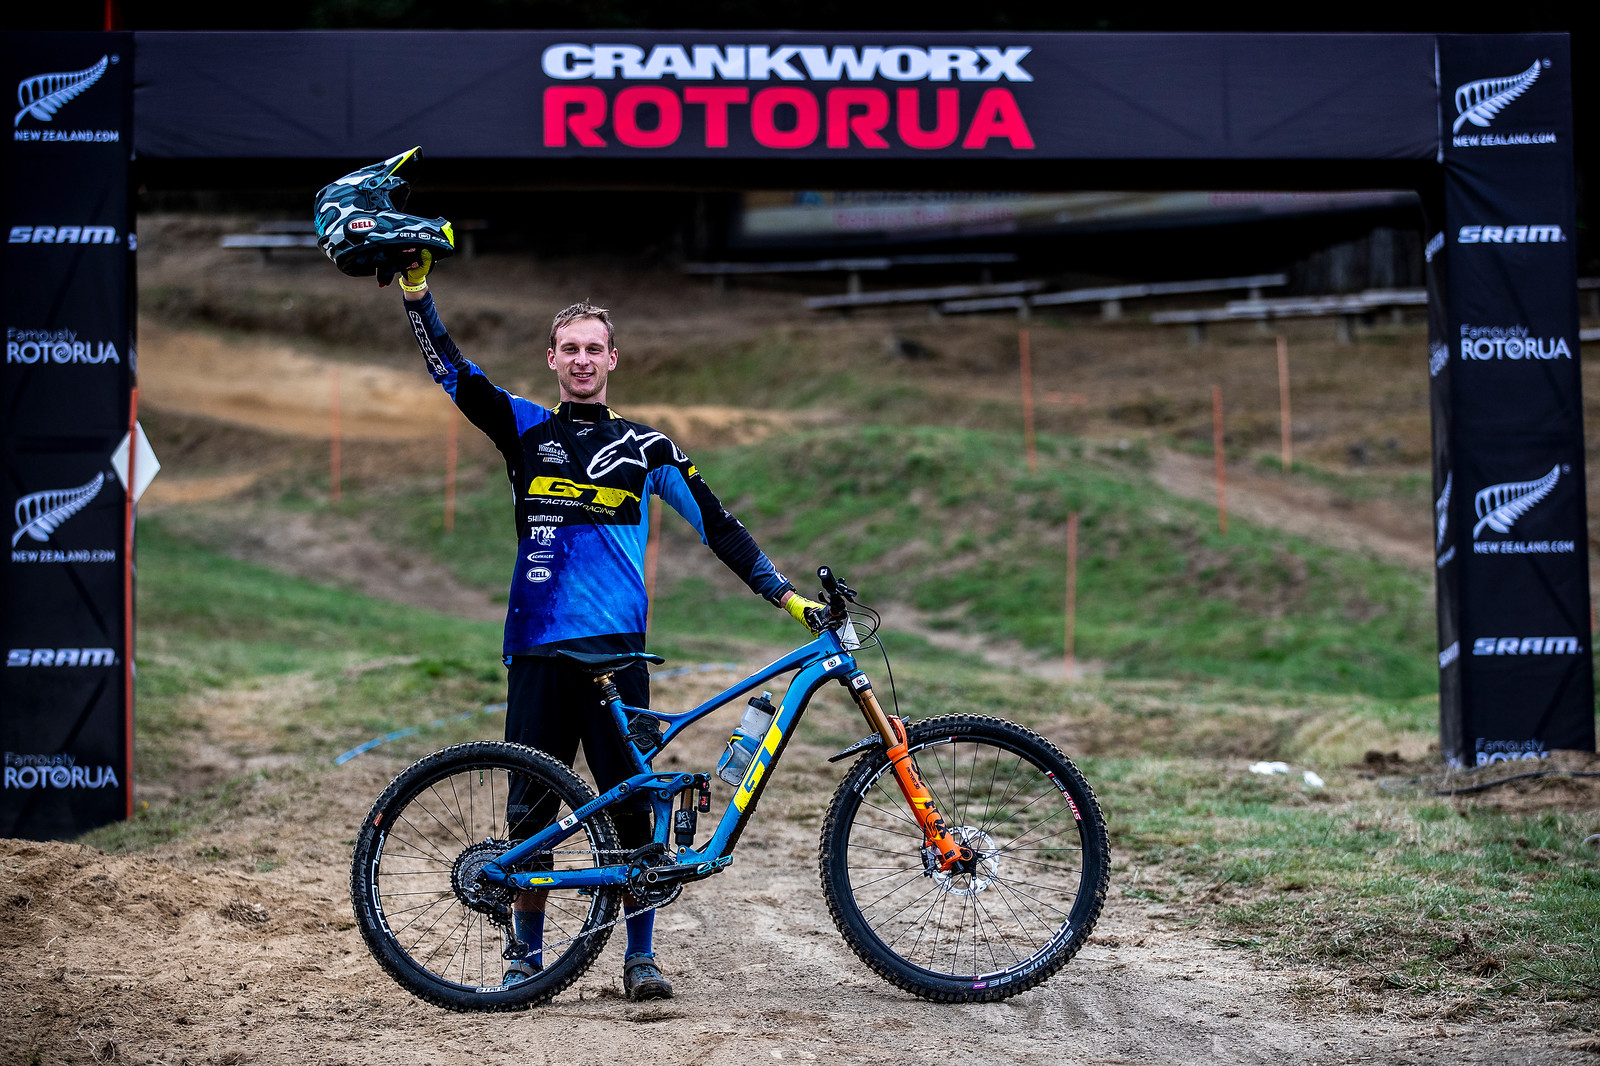 Martin Maes with his winning GT Force featuring a 27.5-inch rear wheel and 29-inch front.